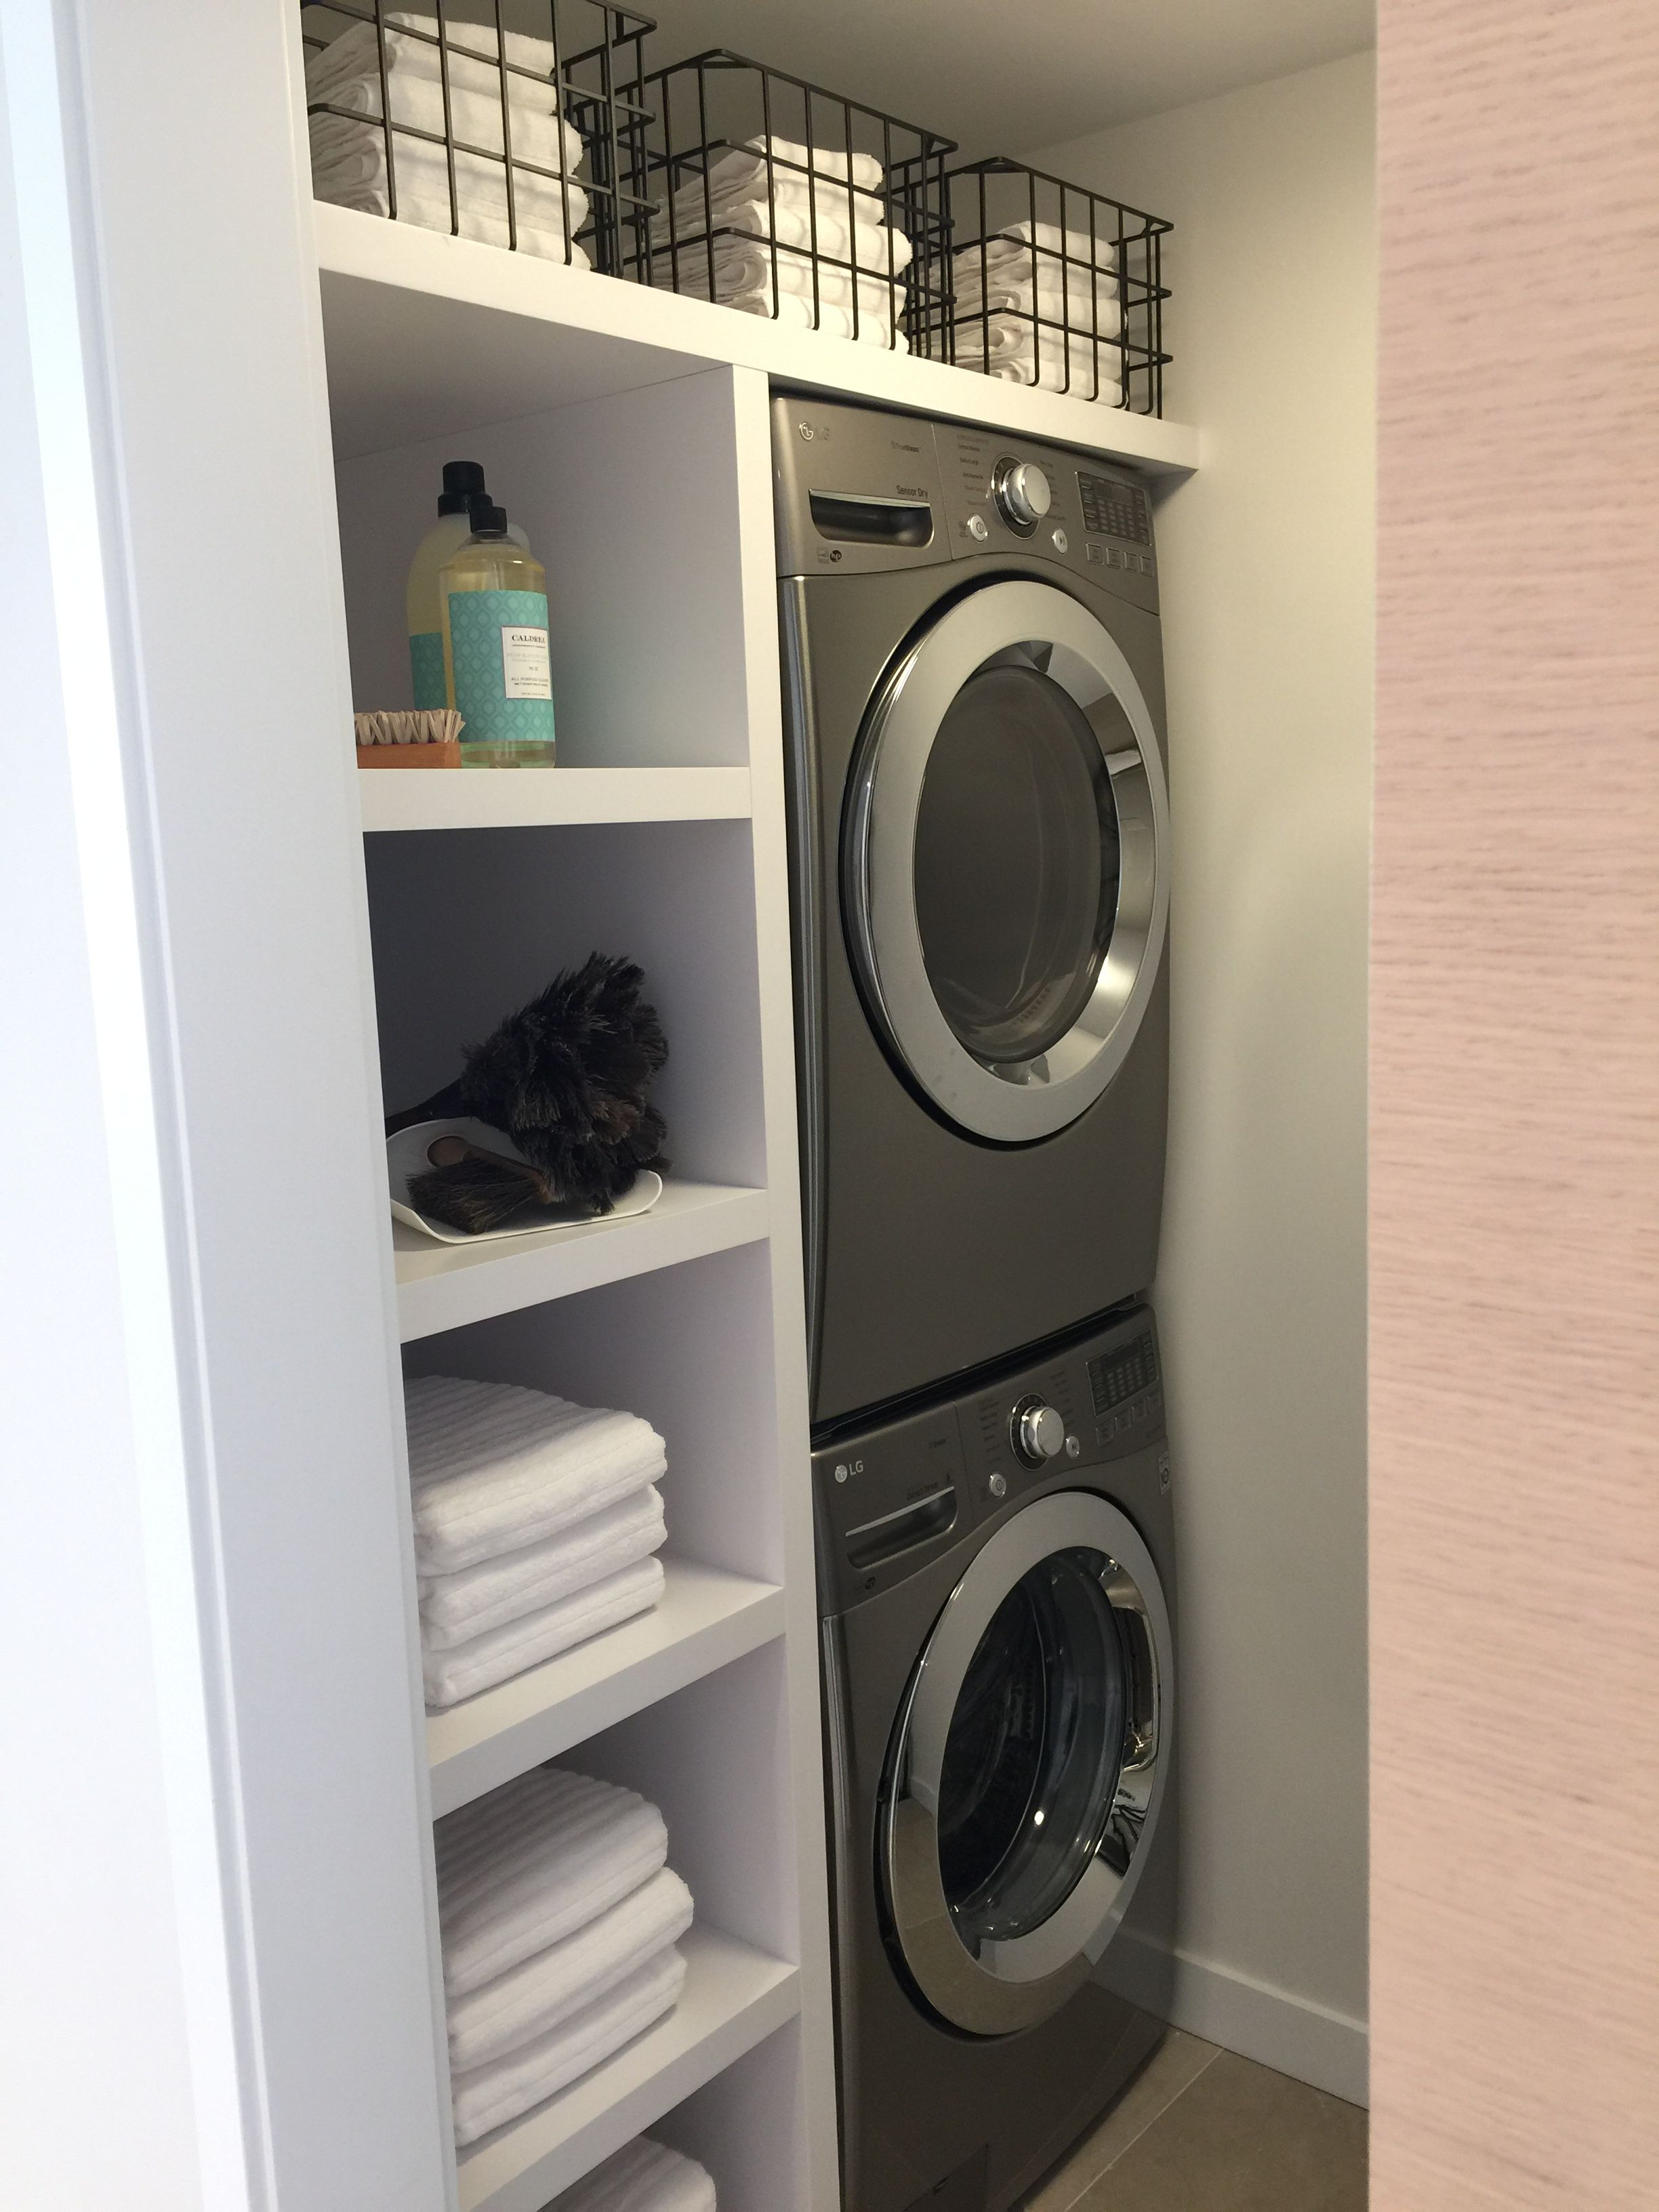 Pin by Brie Jensen on For the Home Laundry room design